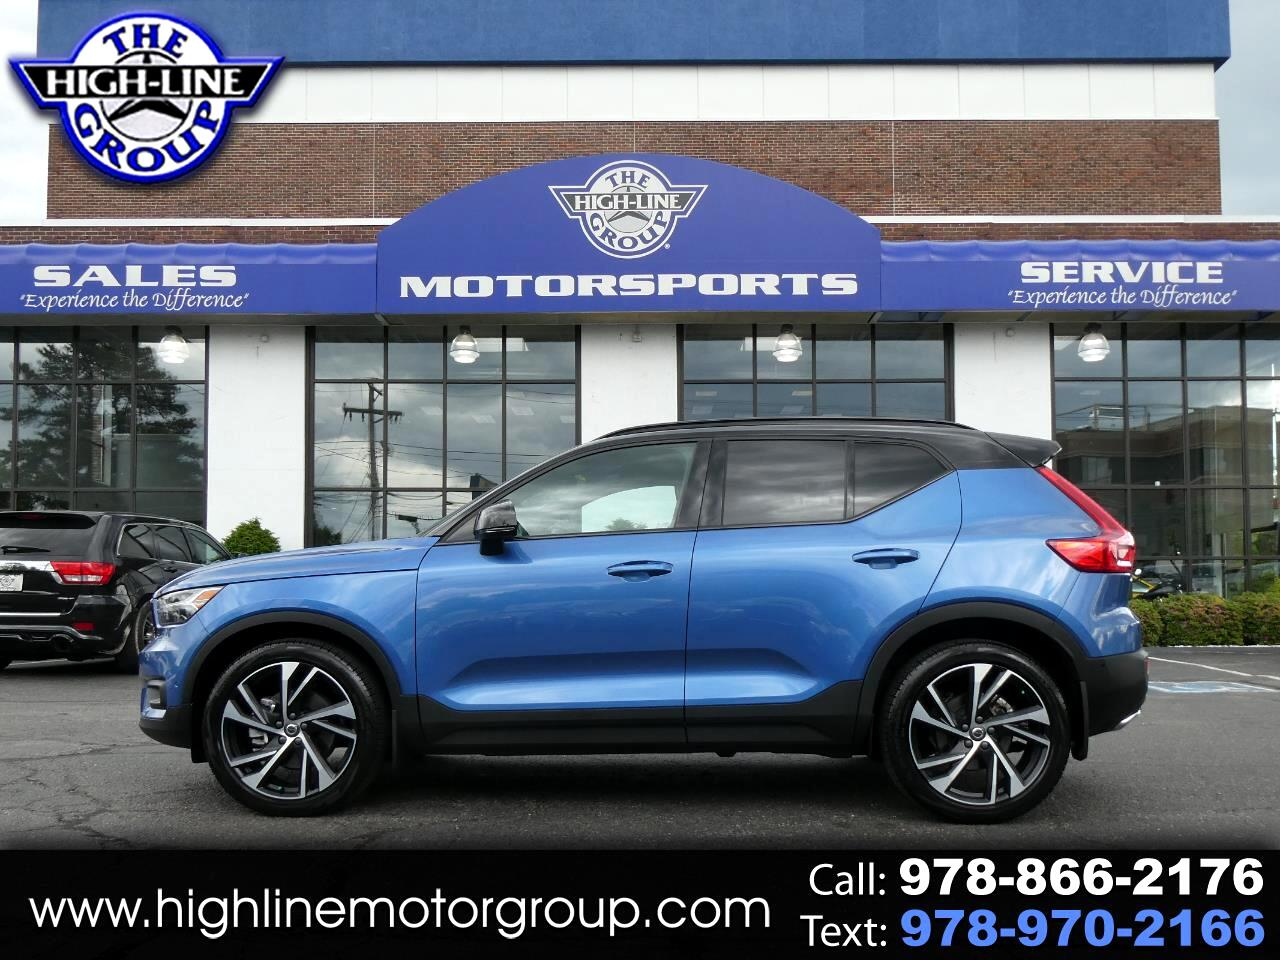 Used 2019 Volvo Xc40 T5 Awd R Design For Sale In Lowell Ma 01851 The Highline Group